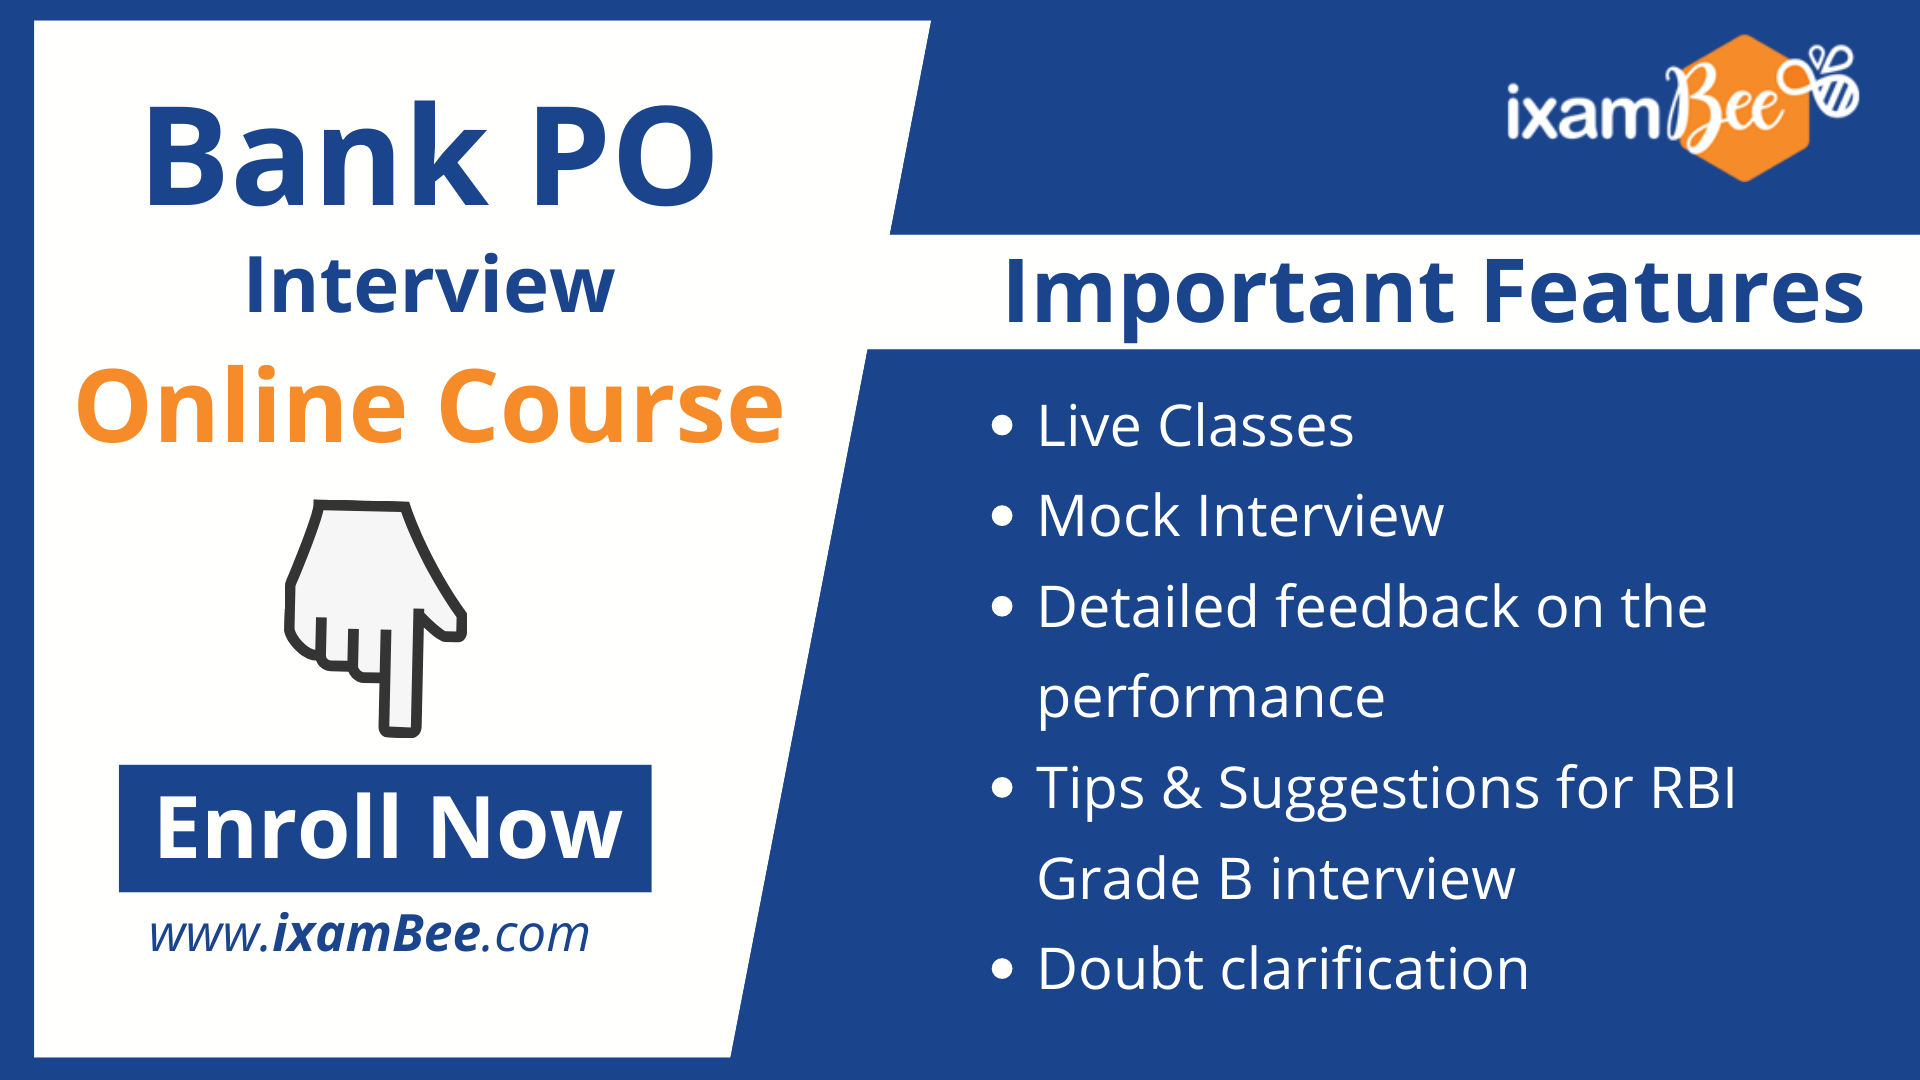 Bank PO Interview Course